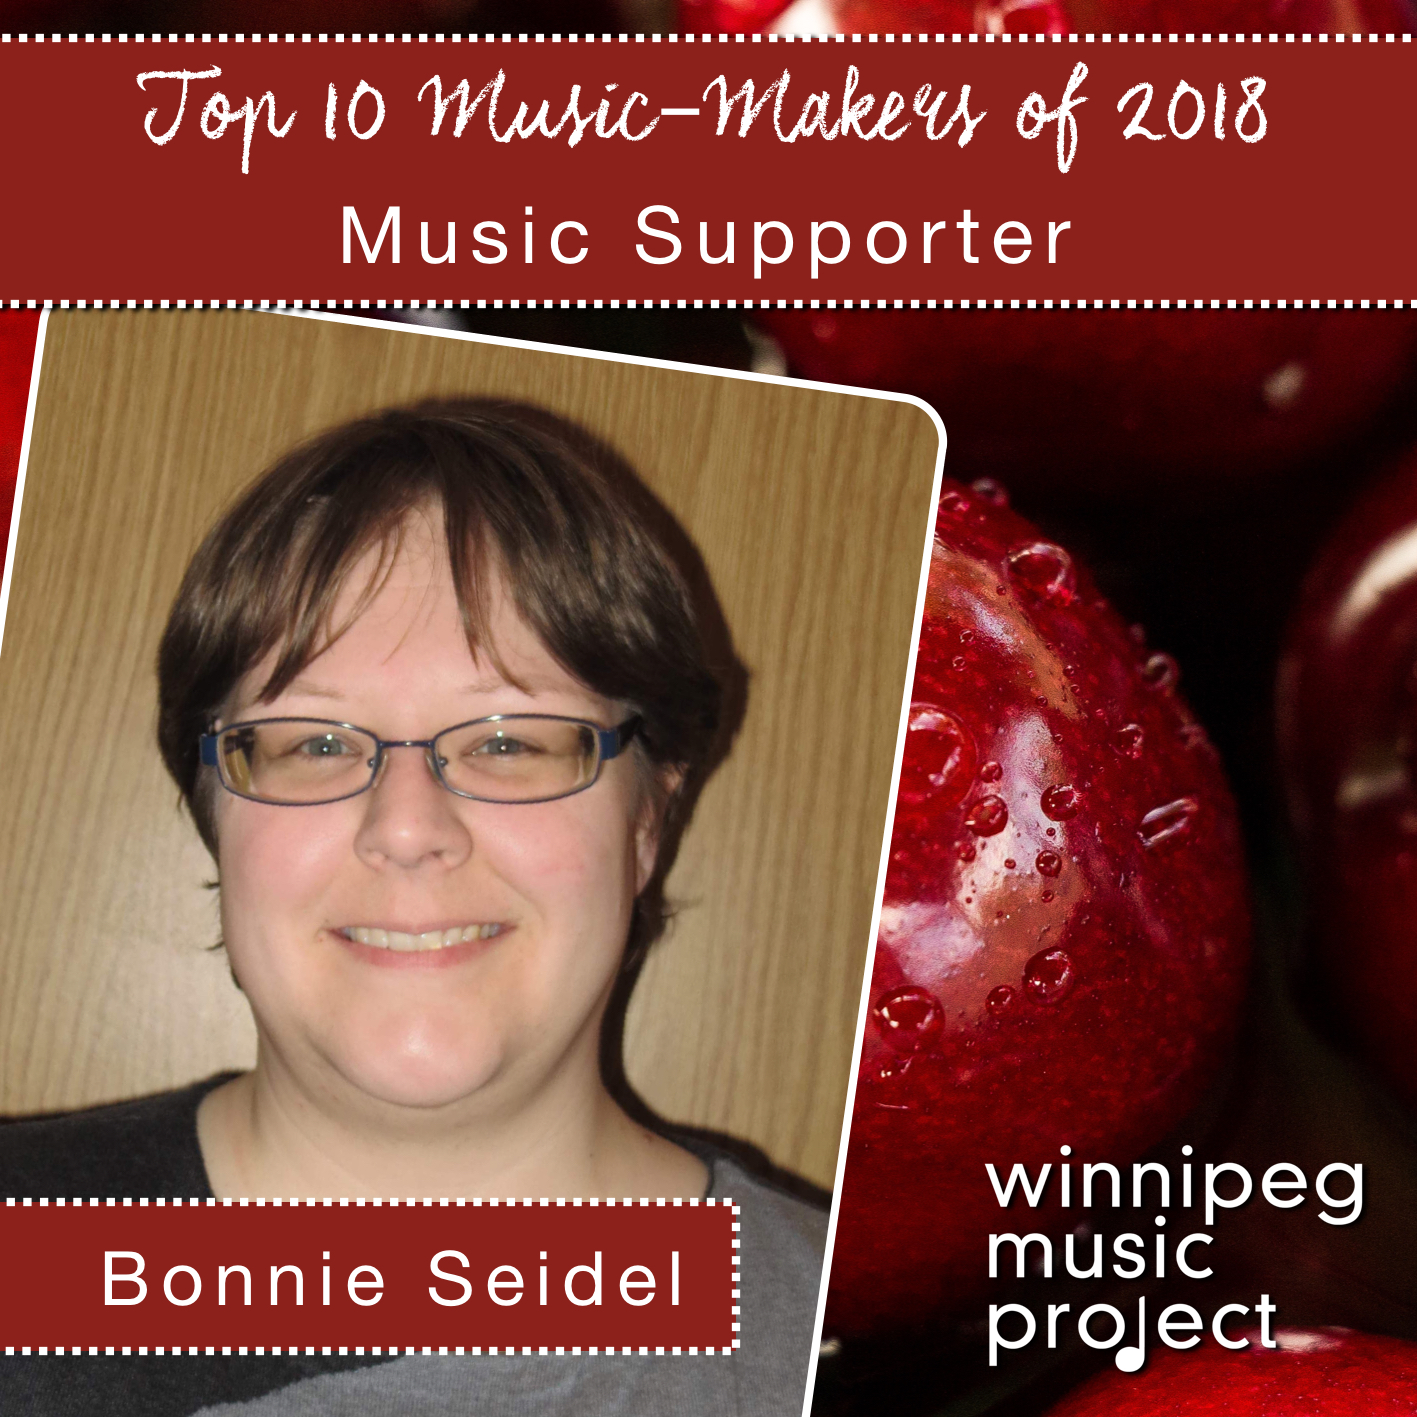 Bonnie Seidel | Top 10 Music Maker of 2018 | Winnipeg Music Project